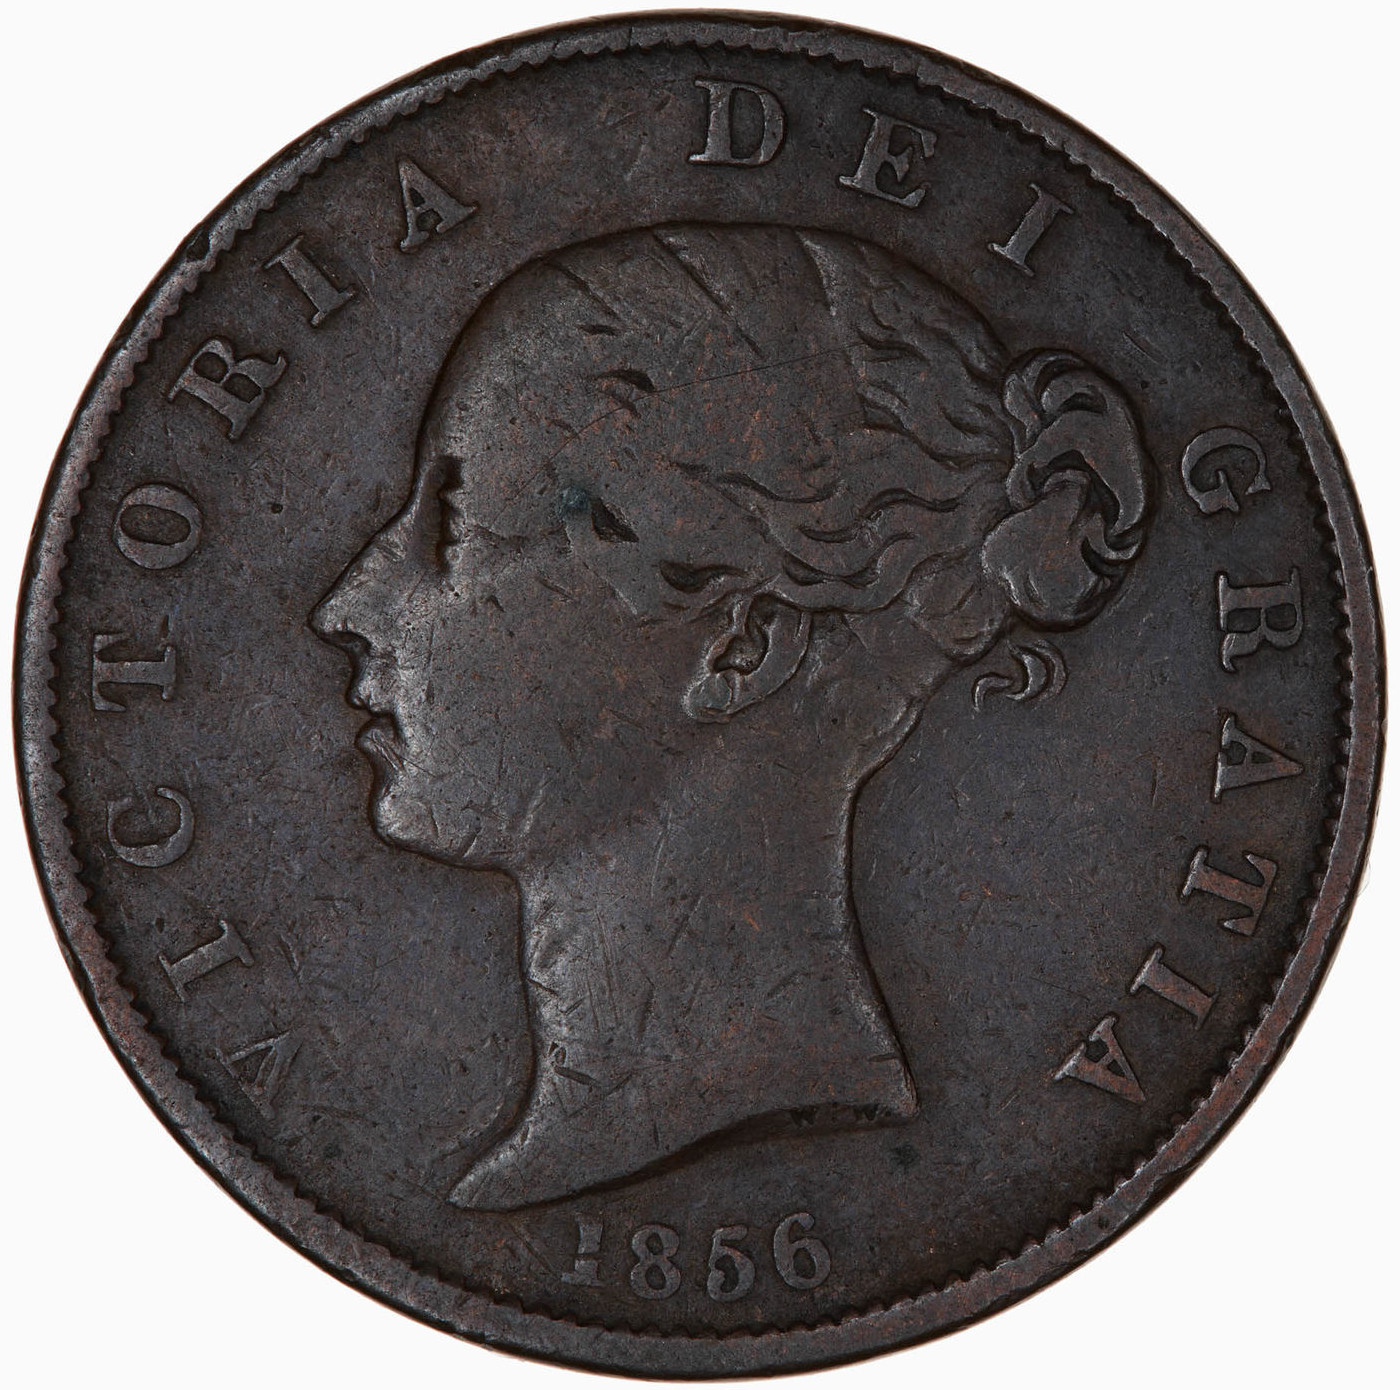 Halfpenny 1856: Photo Coin - Halfpenny, Queen Victoria, Great Britain, 1856